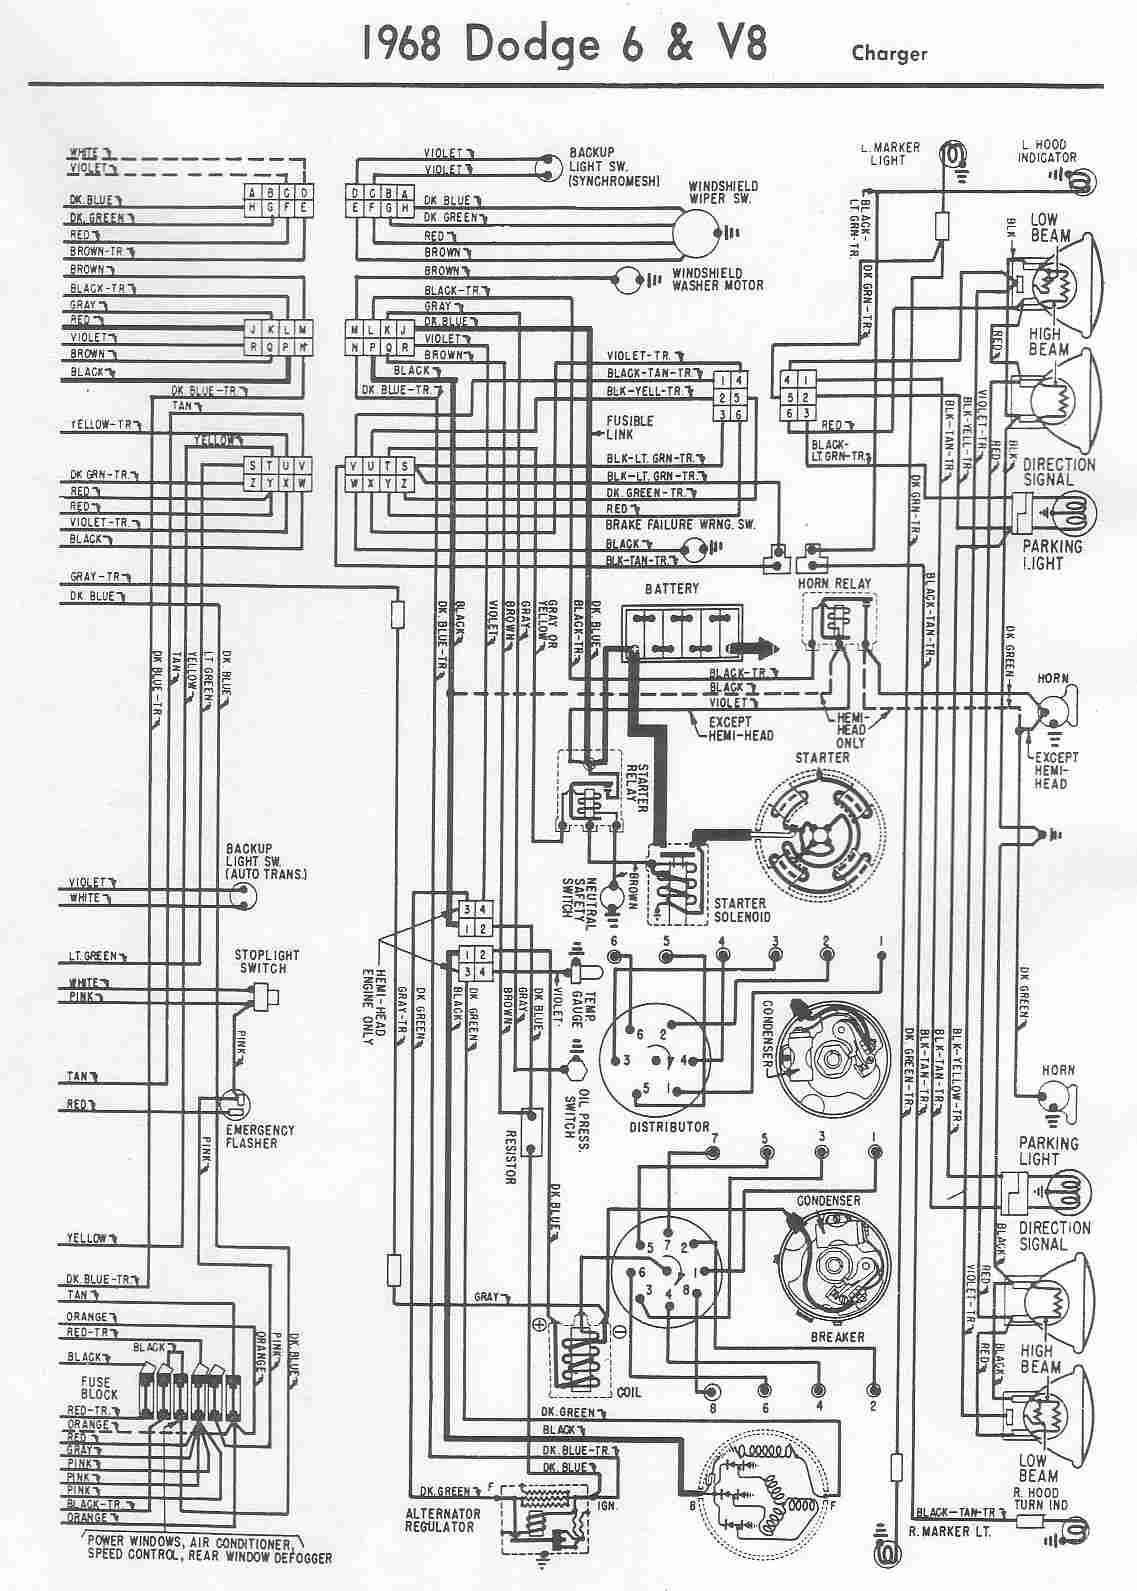 1972 dodge dart dash wiring harness 35 wiring diagram images wiring diagrams  readyjetset co 1965 chevy impala fuse box 1964 Impala